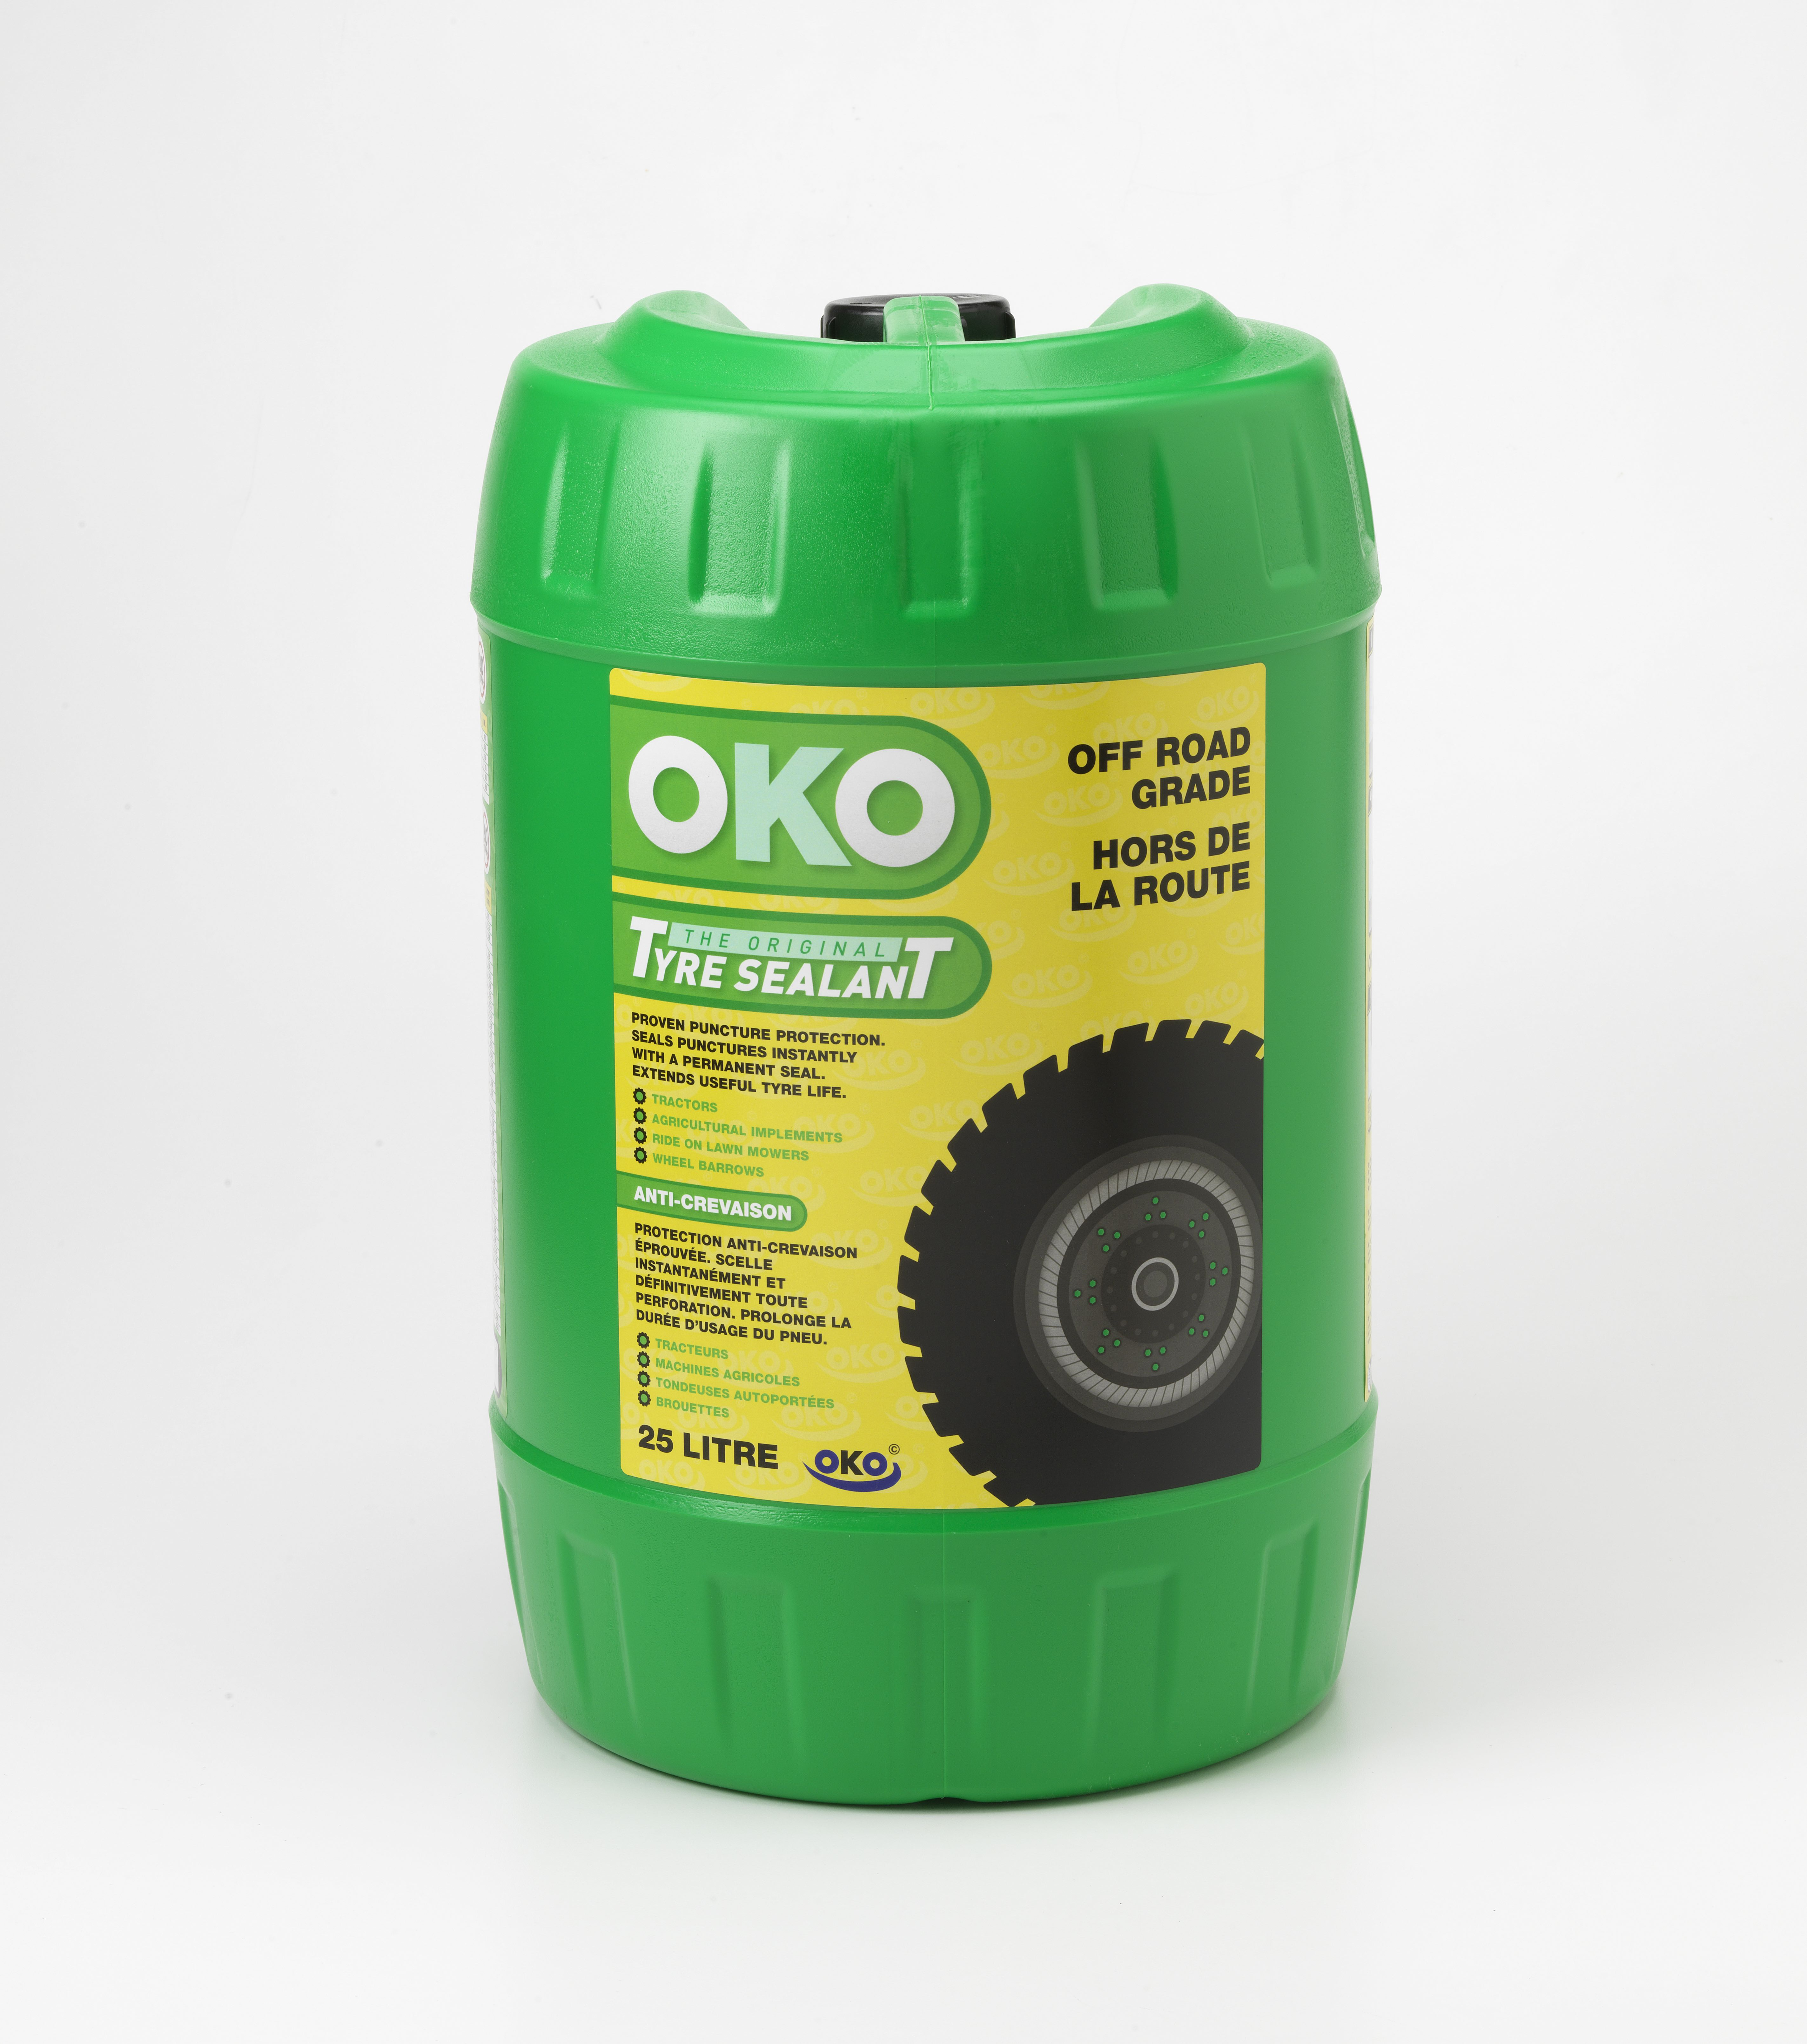 OKO Off Road tyre sealant in drums is designed for tough conditions